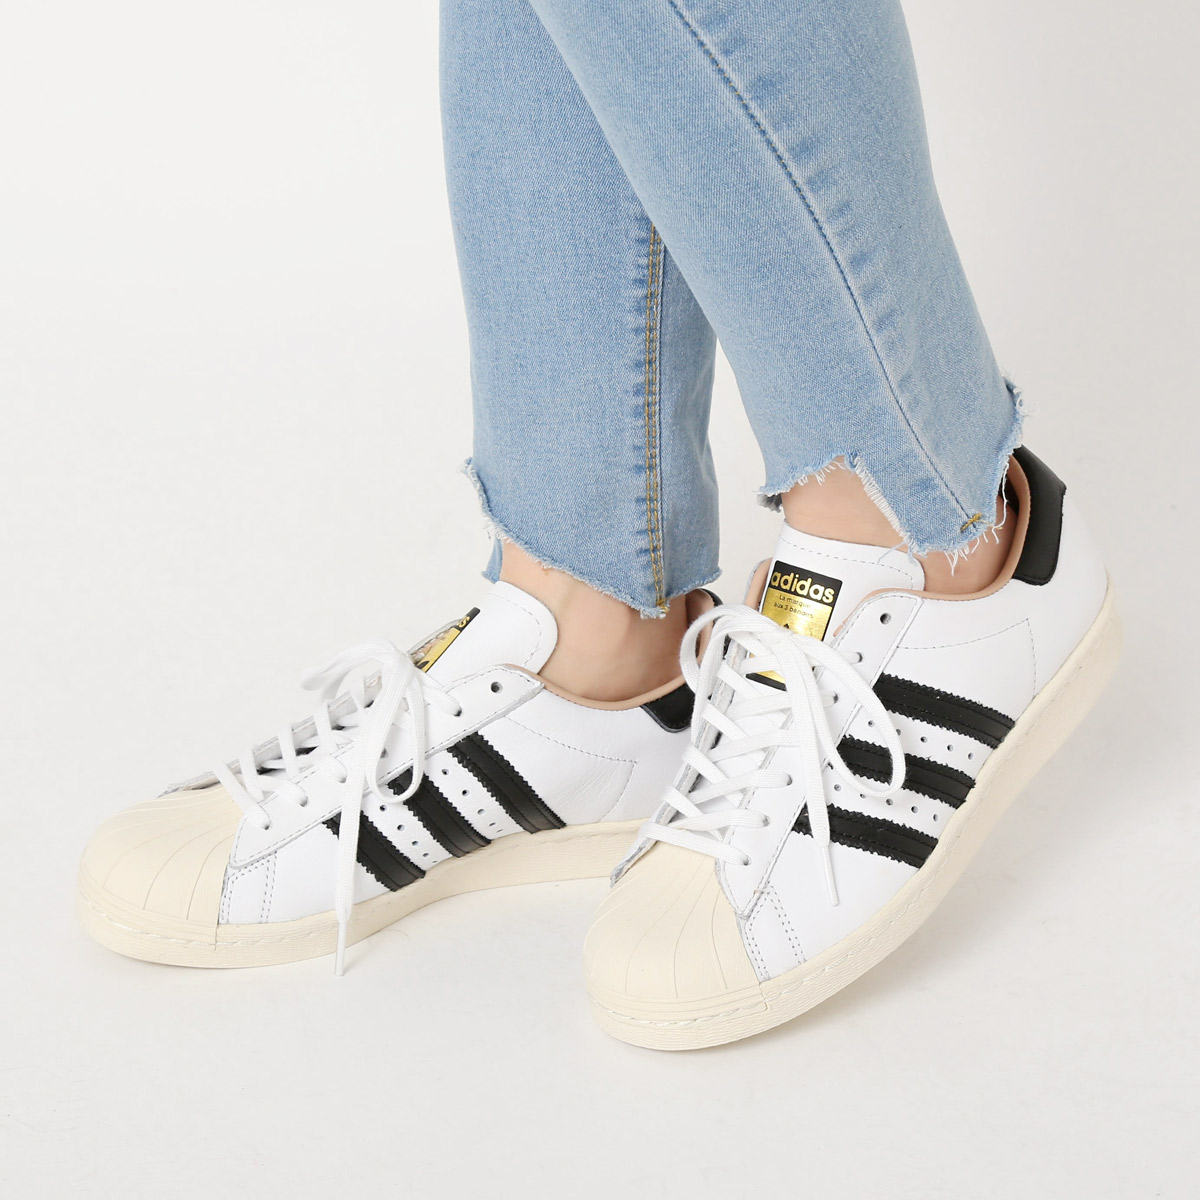 adidas Originals SUPERSTAR 80s W (Running WhiteCore BlackOff White) (Adidas originals superstar 80s) 17SS I